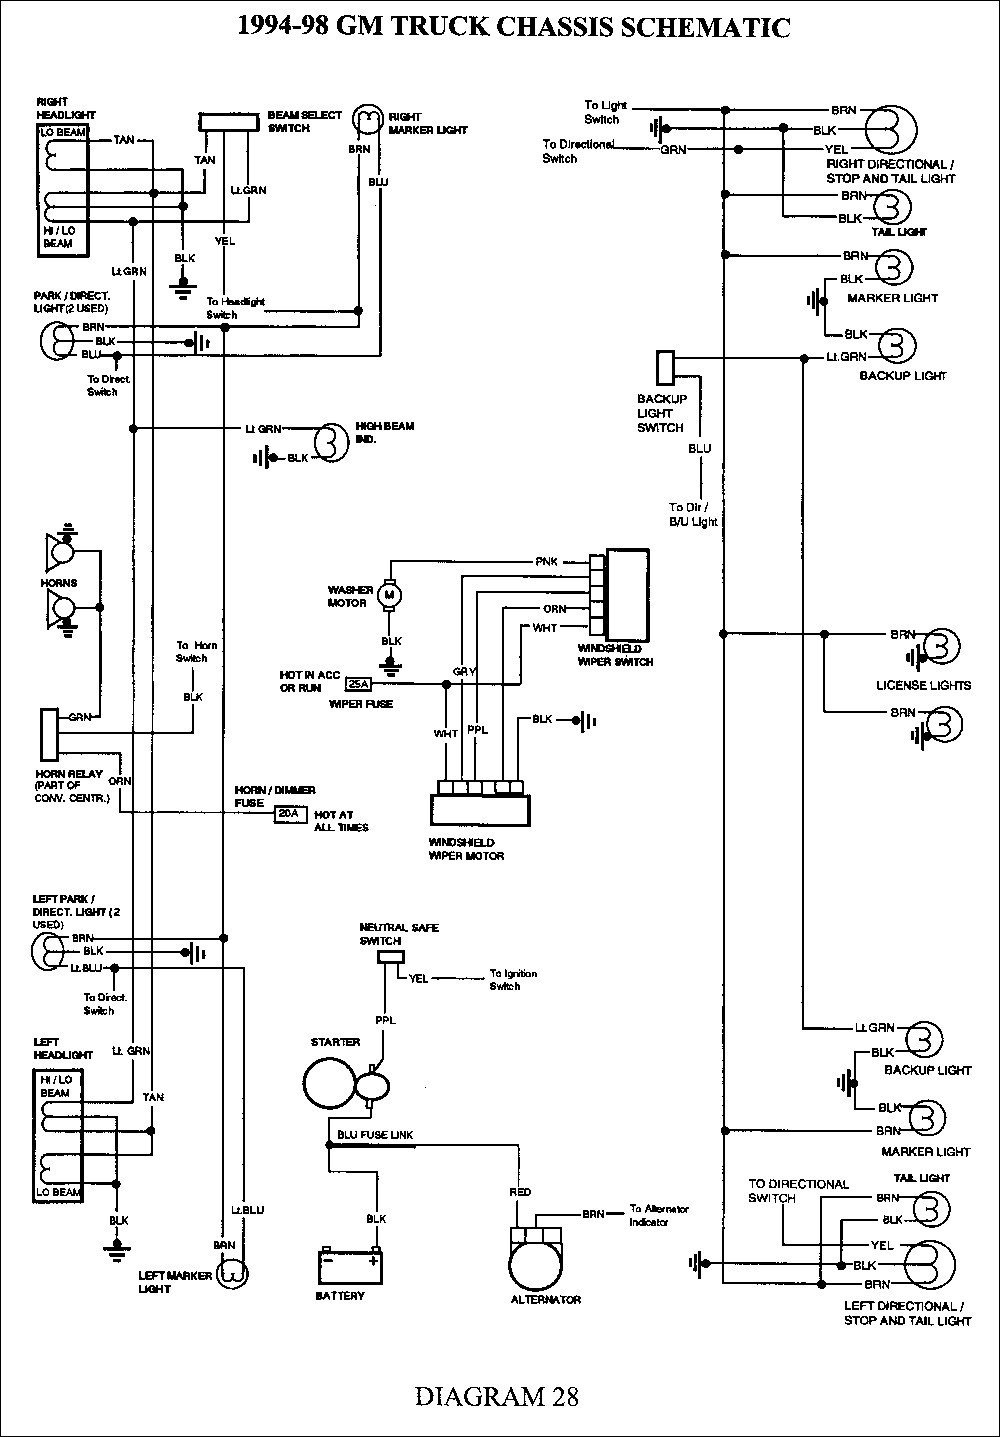 1999 Chevy Silverado Light Wiring Diagram